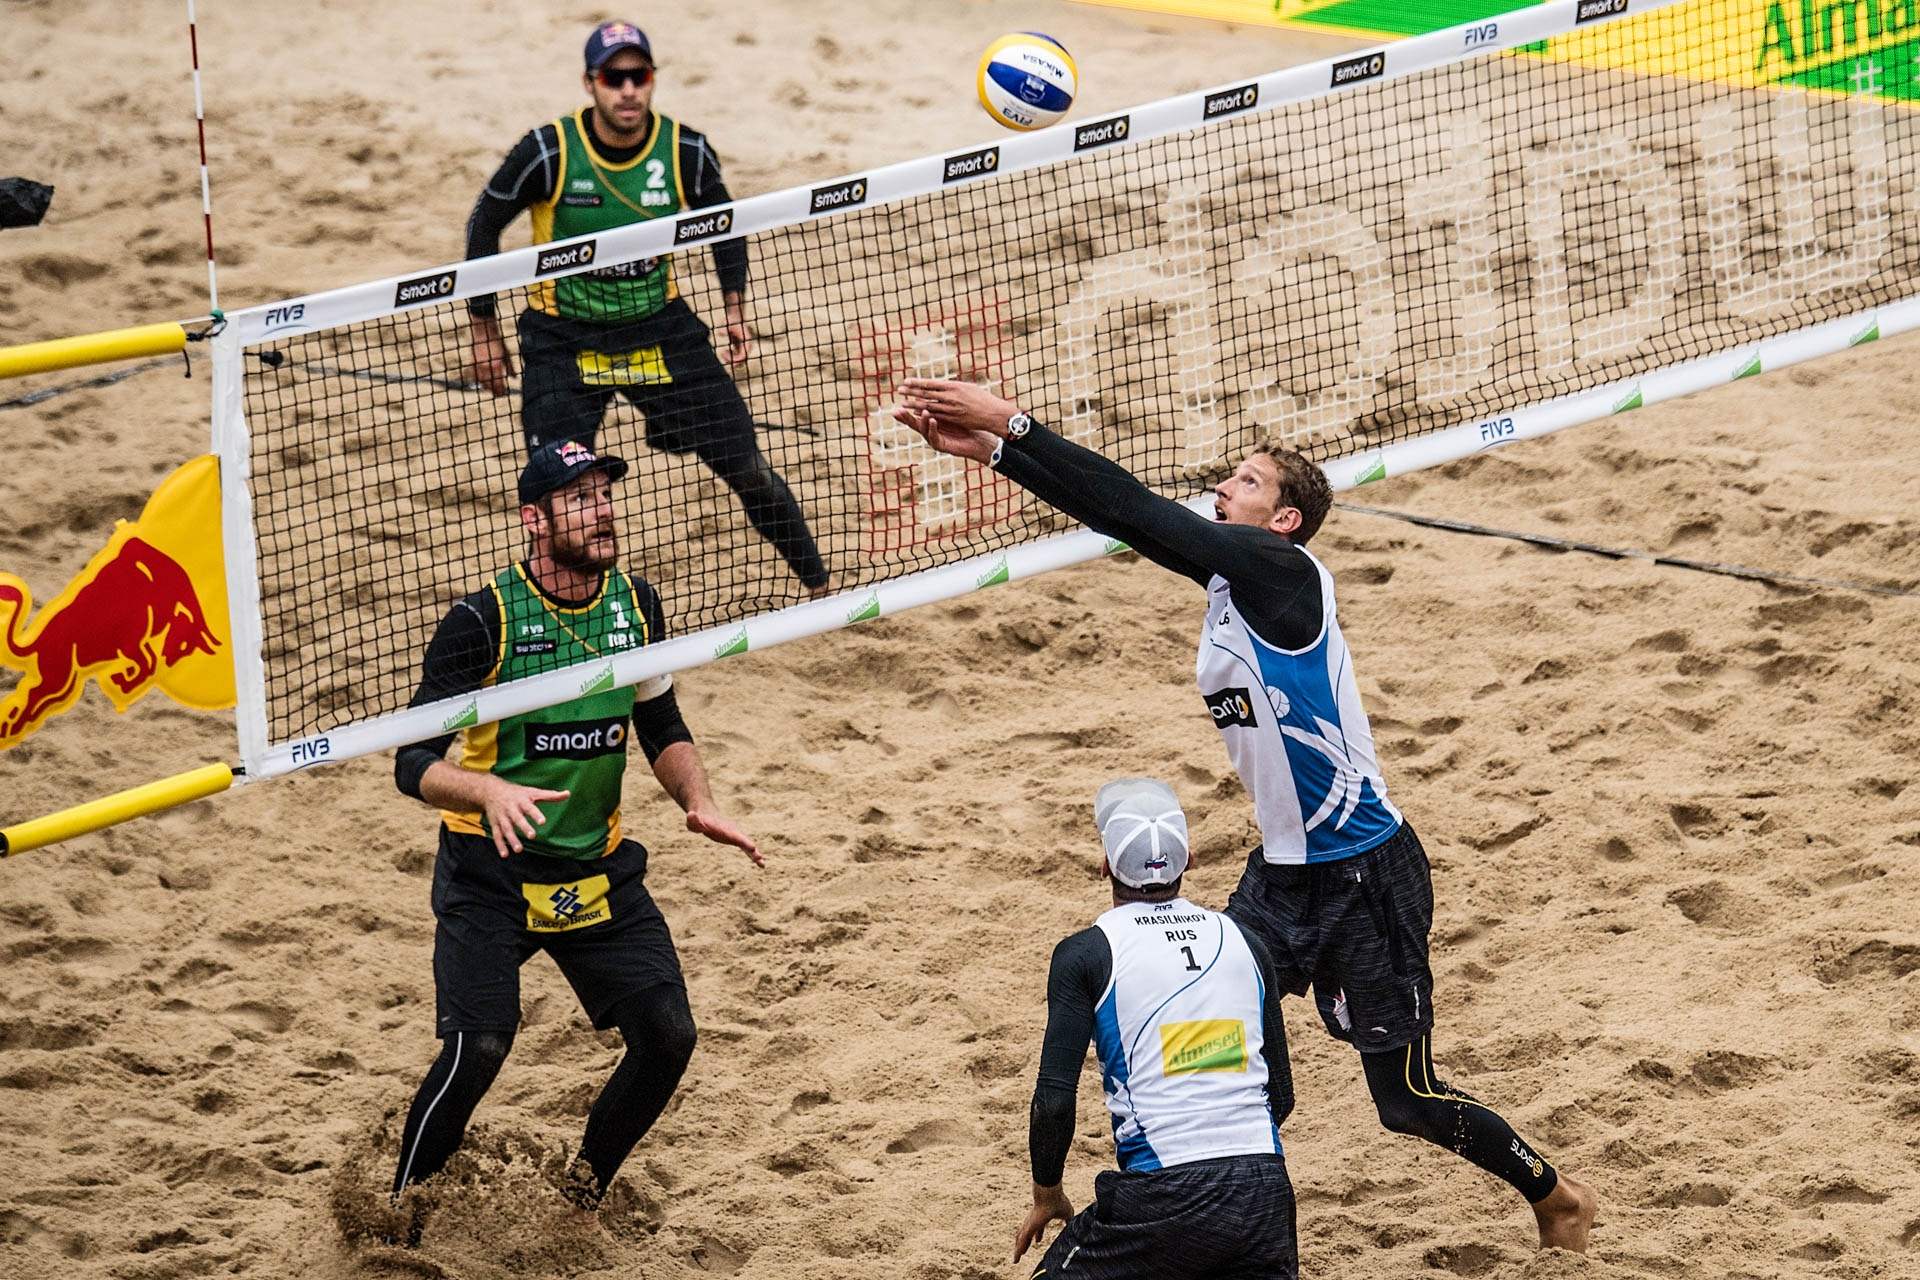 Russians take bronze at #HamburgMajor. Photocredit: Joerg Mitter